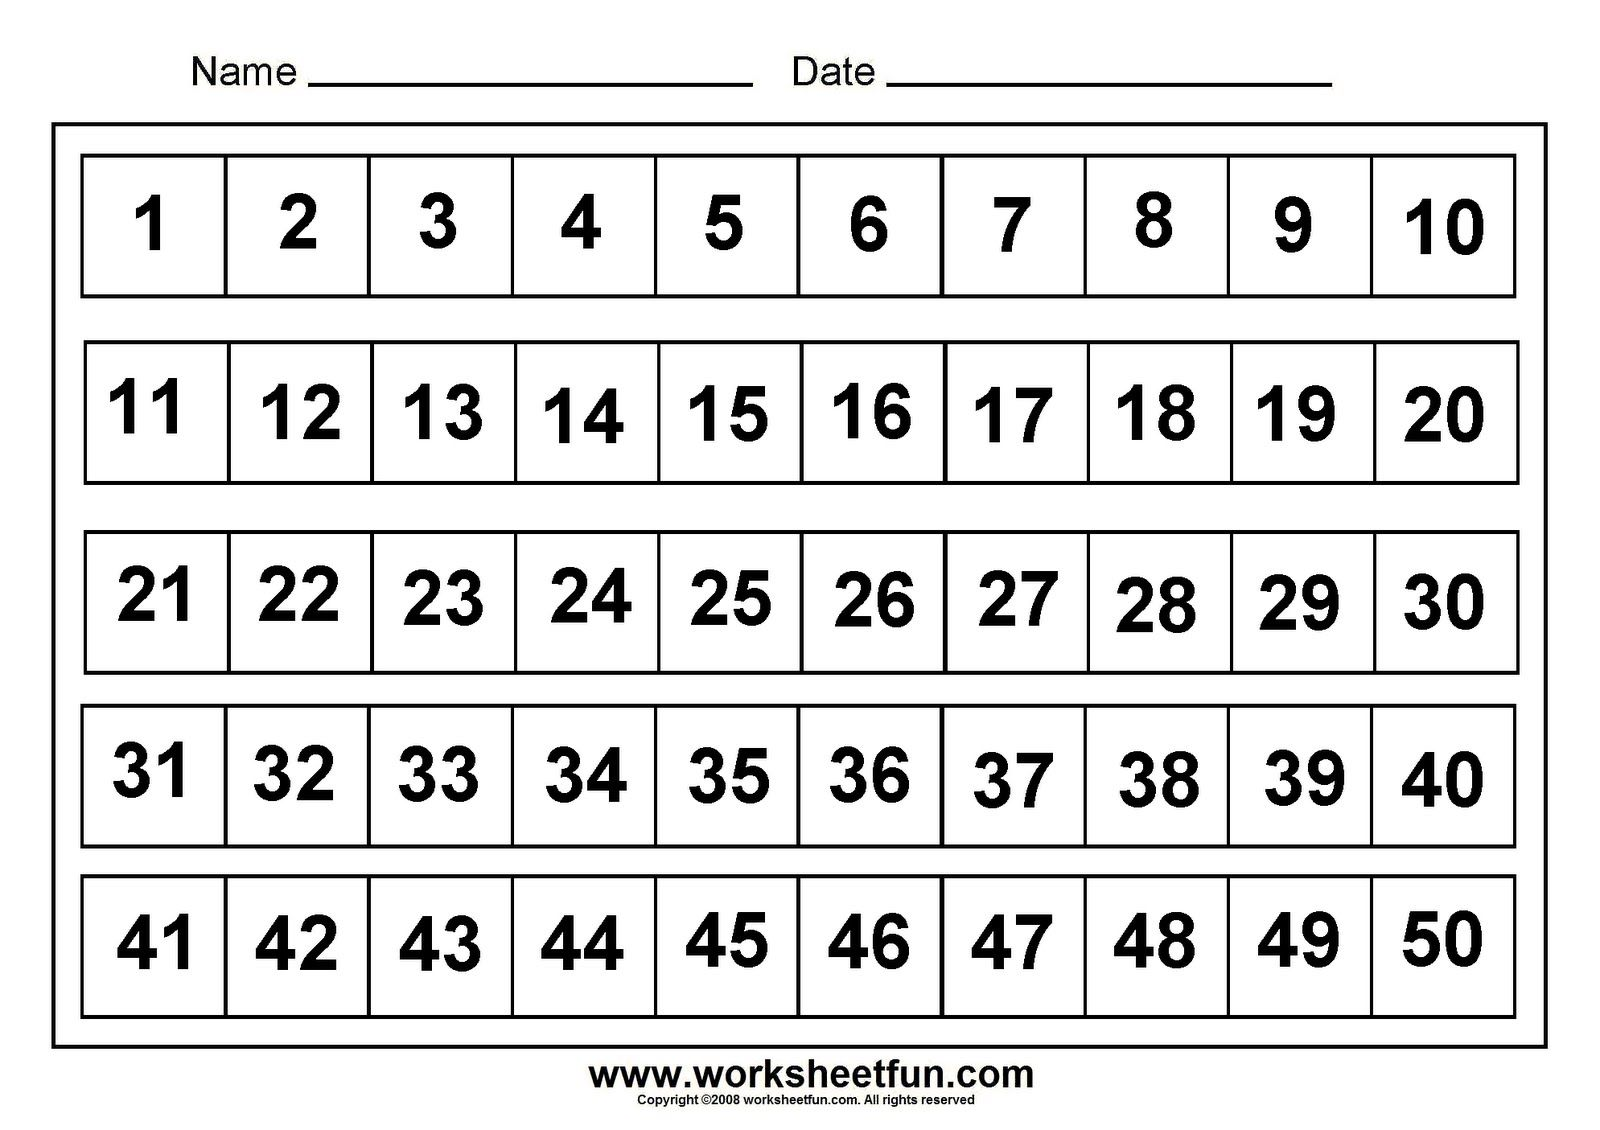 Printable number chart also munchies math worksheets rh pinterest